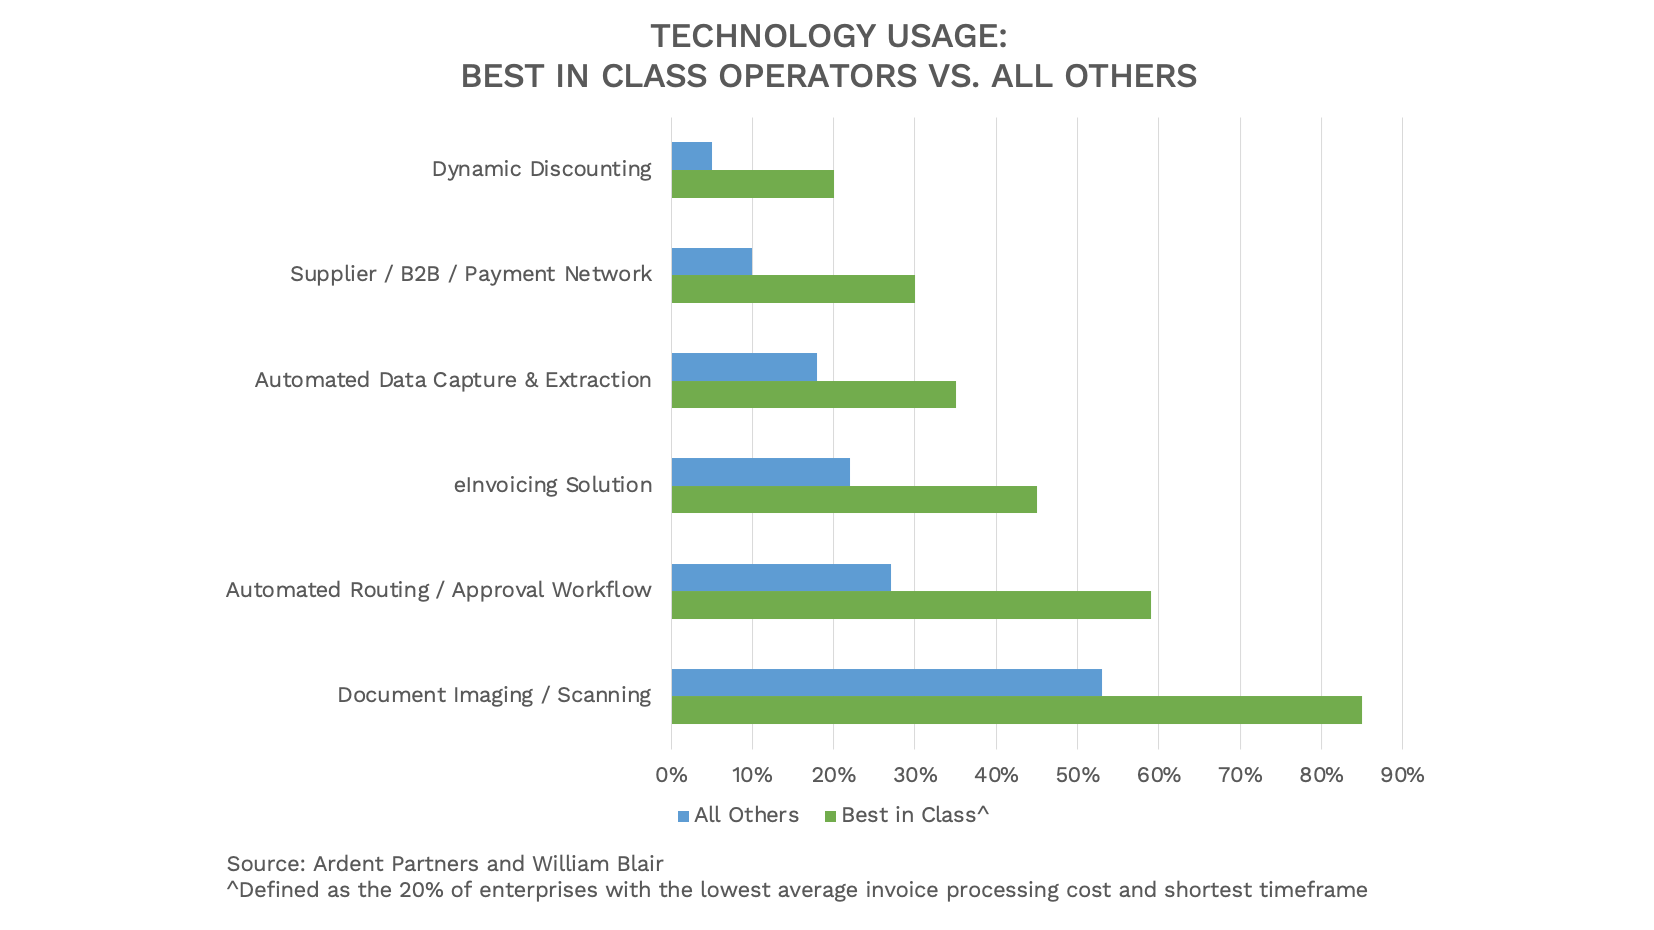 bar graph showing technology usage: best-in-class operators vs. all others